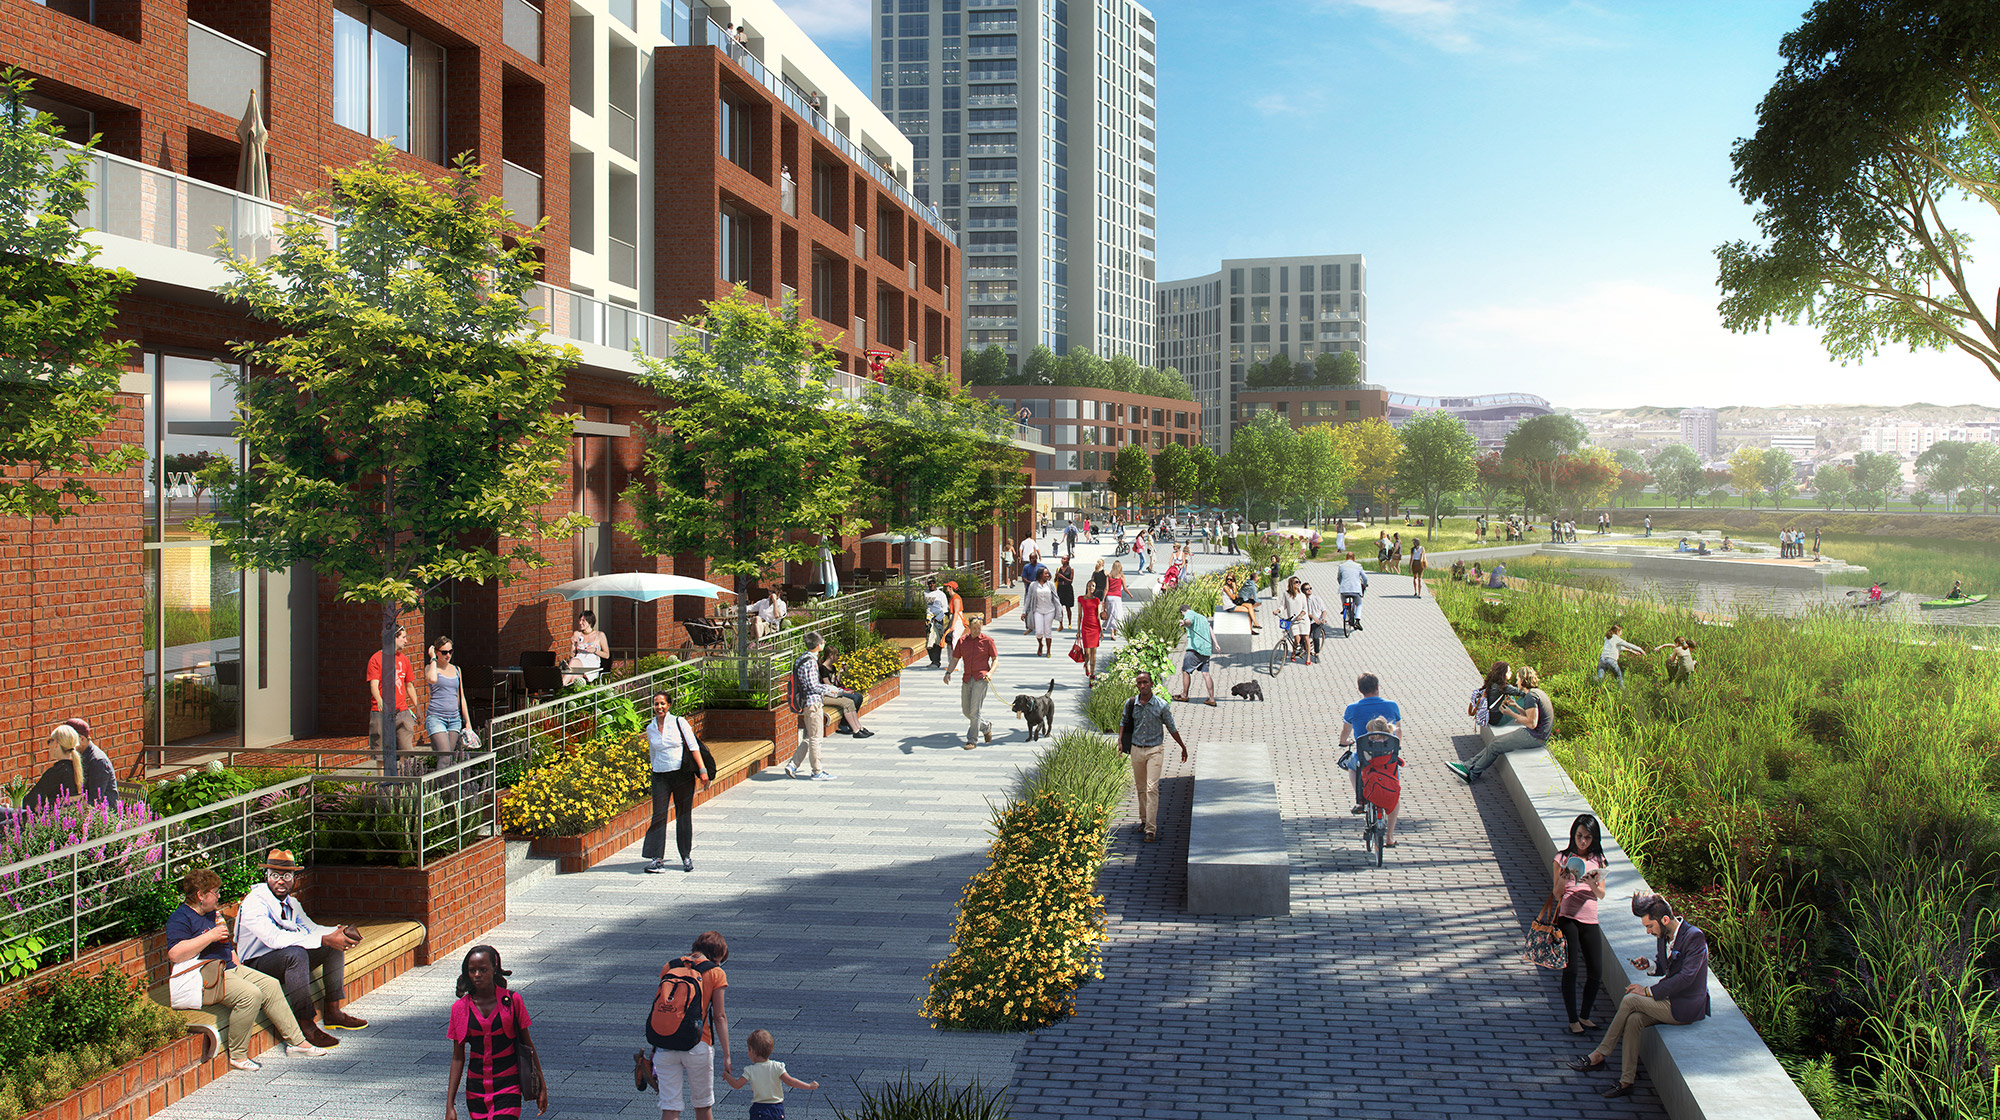 River Mile public space conceptual rendering, courtesy of Revesco Properties and SAR Architects